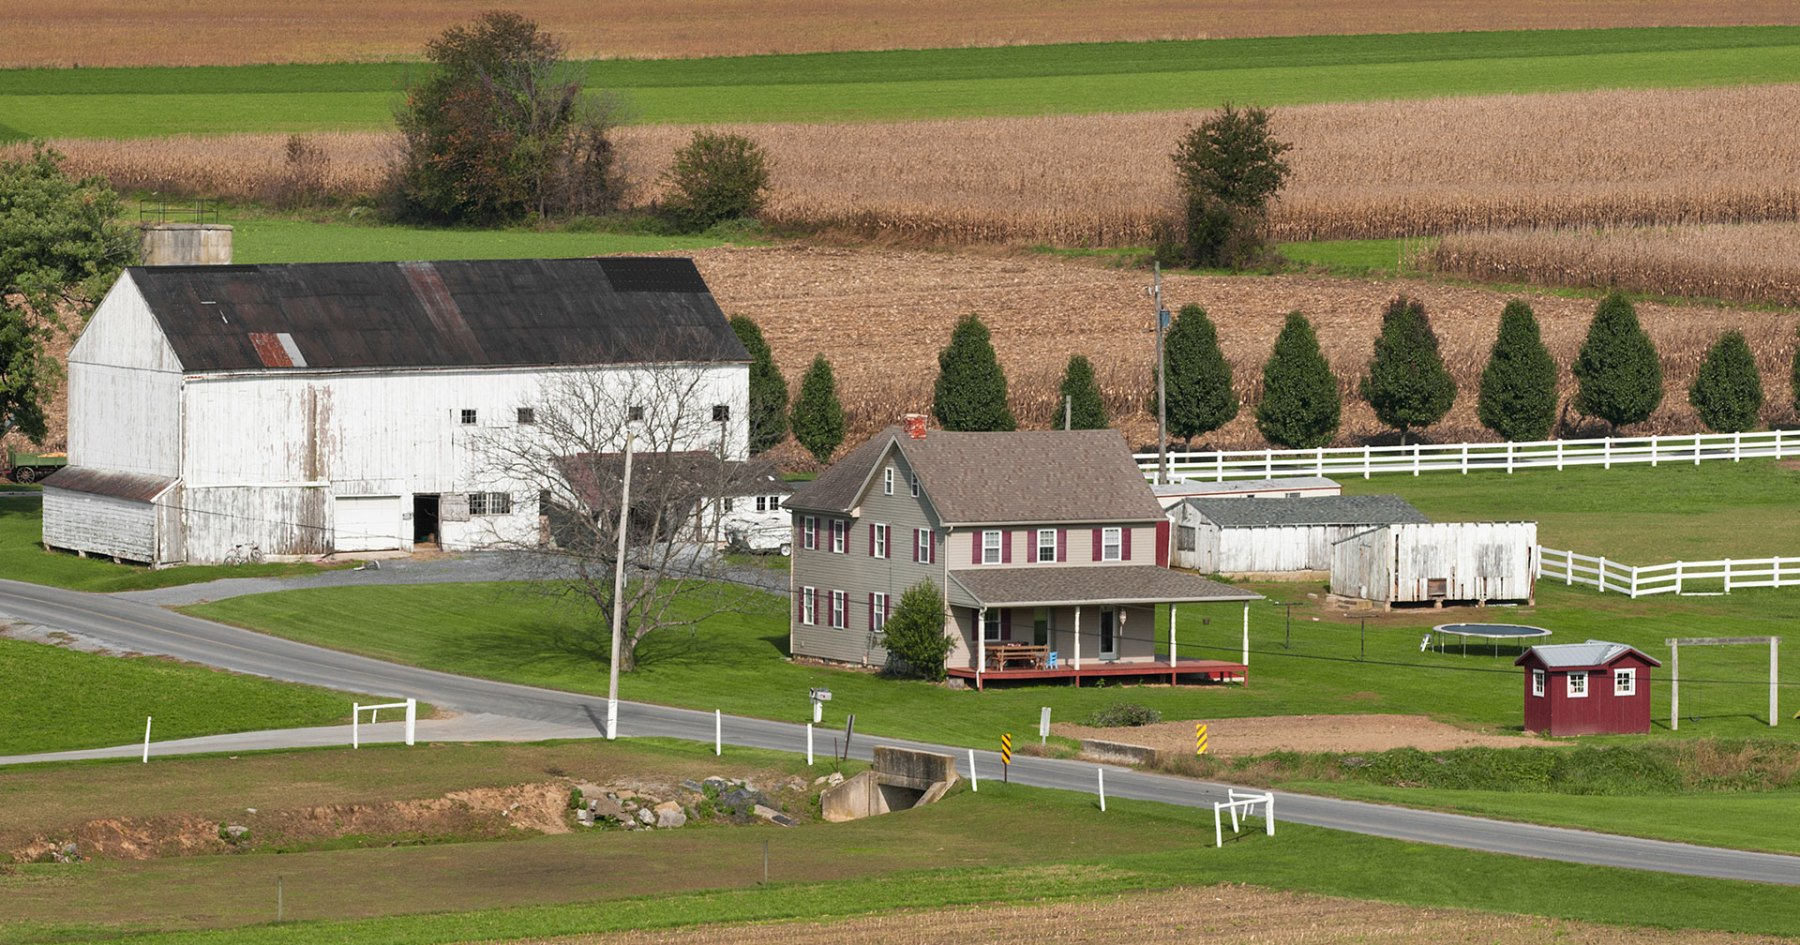 Amish Country Is a Great Place for a Booze Tour. Seriously.